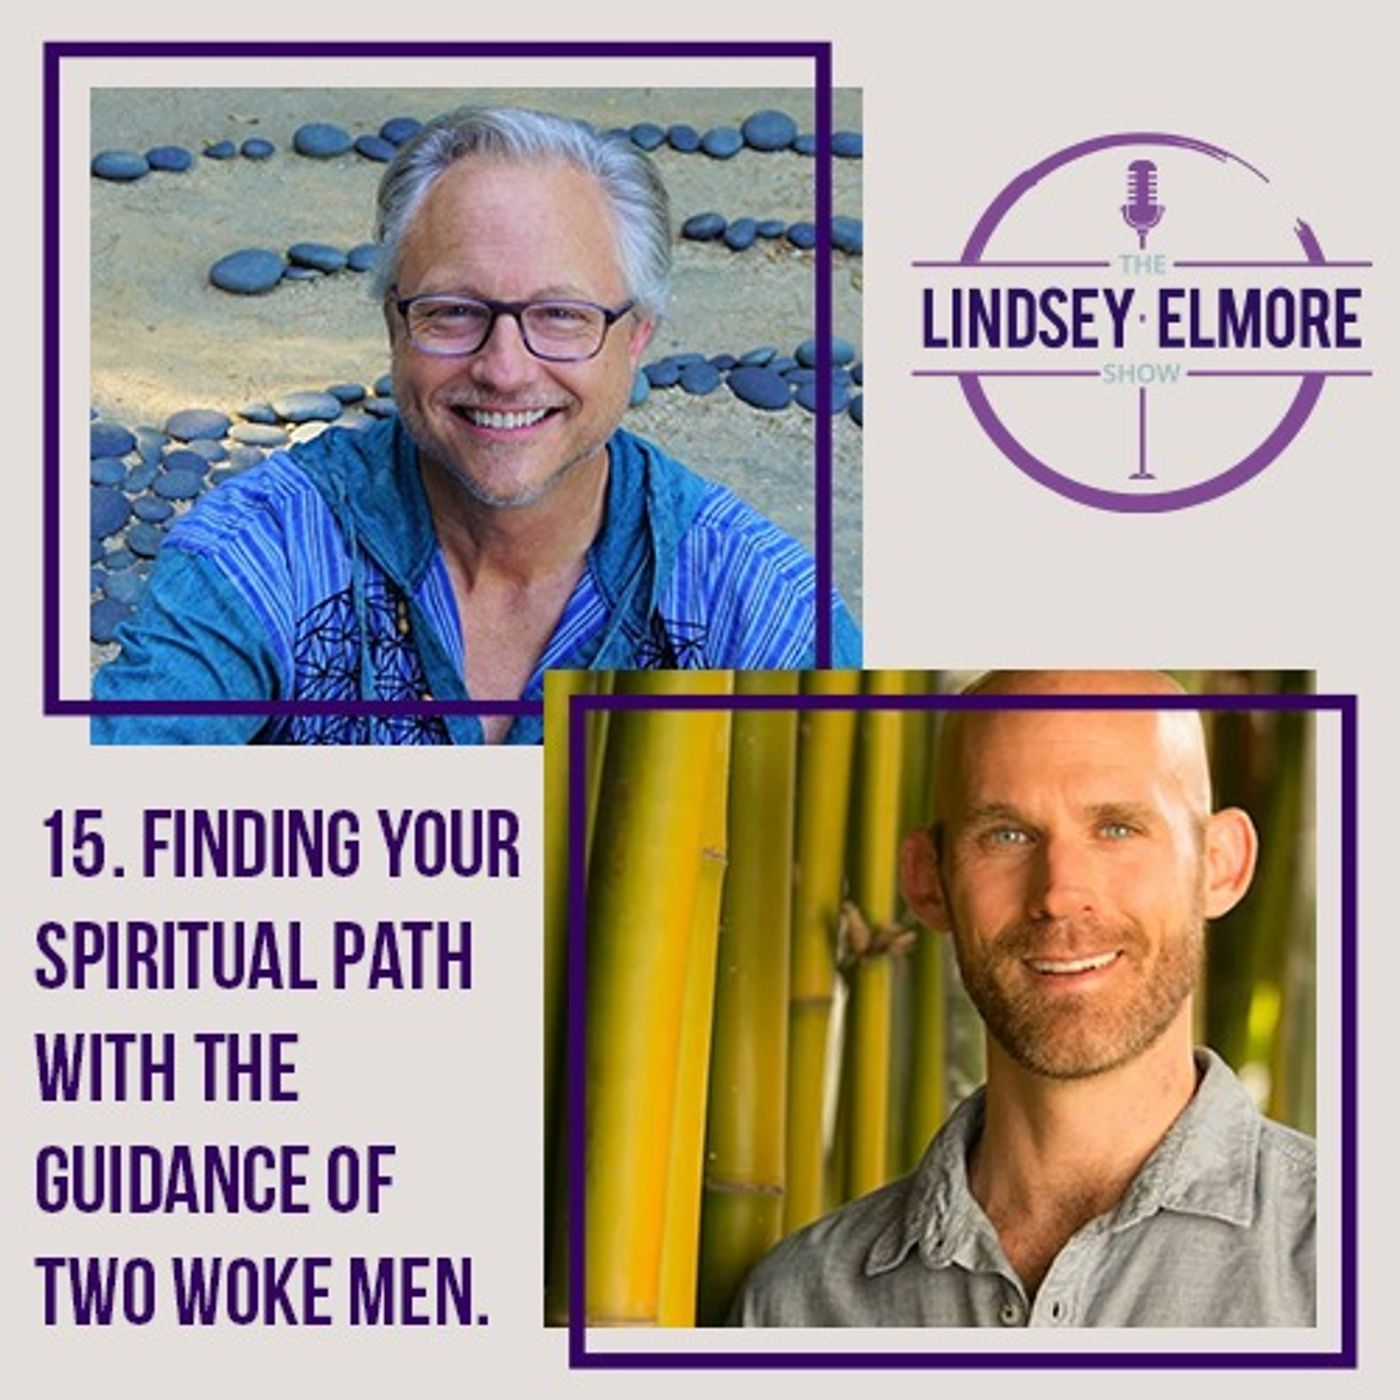 Finding your spiritual path with the guidance of two woke men. Interviews with Scott Ware and Toby Gant.